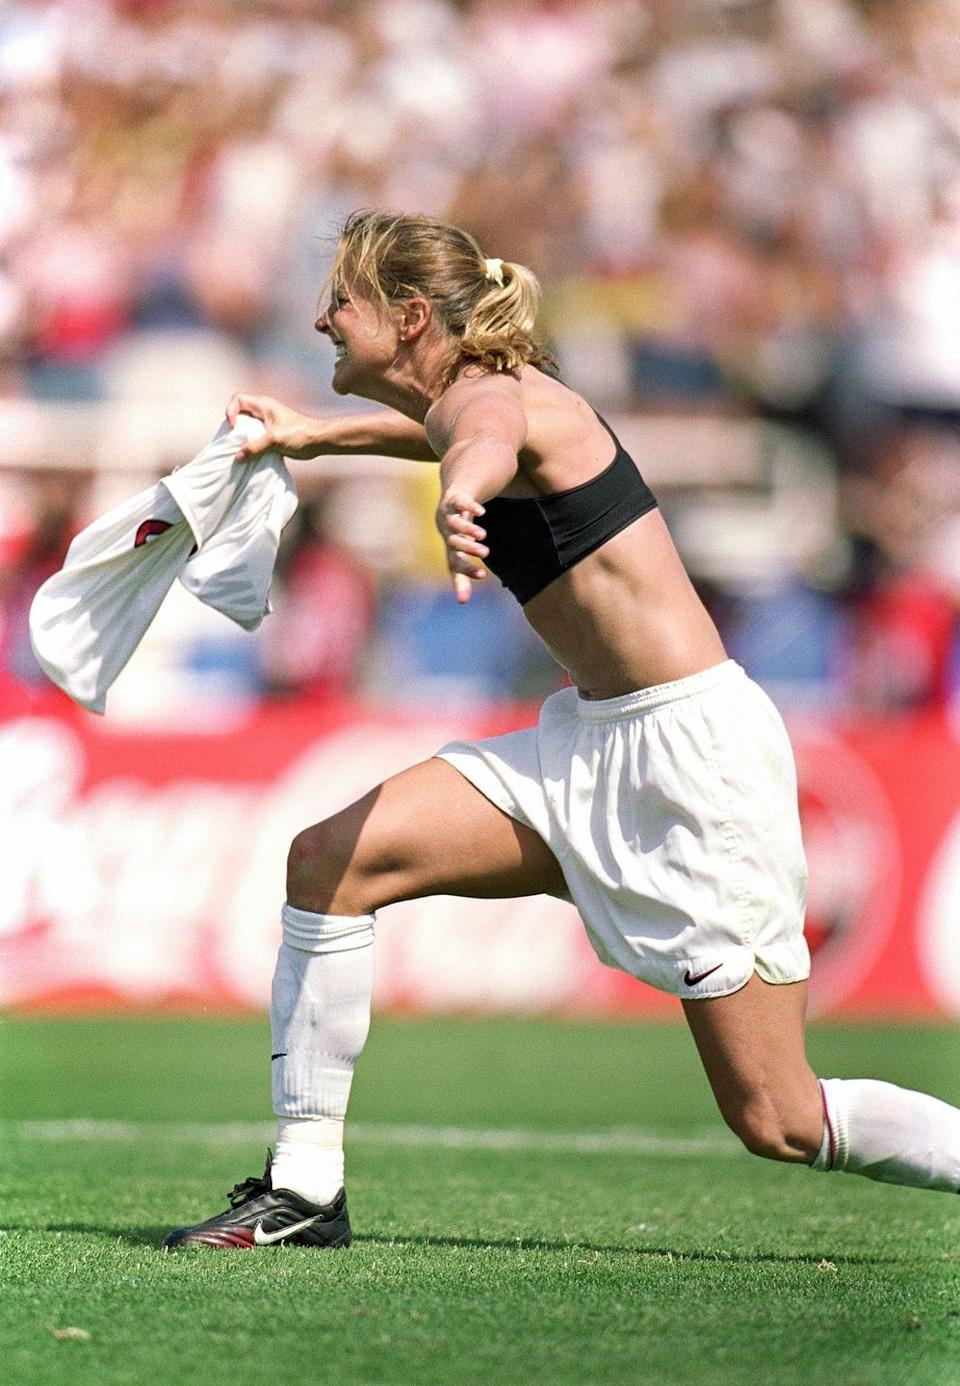 <p>After she scored the winning penalty kick in the Women's 1999 FIFA World Cup final, Brandi ripped off her shirt, exposing her sports bra. It was spontaneous and oh so cool so, naturally, you were dying to do it at your pee-wee soccer matches, too.</p>